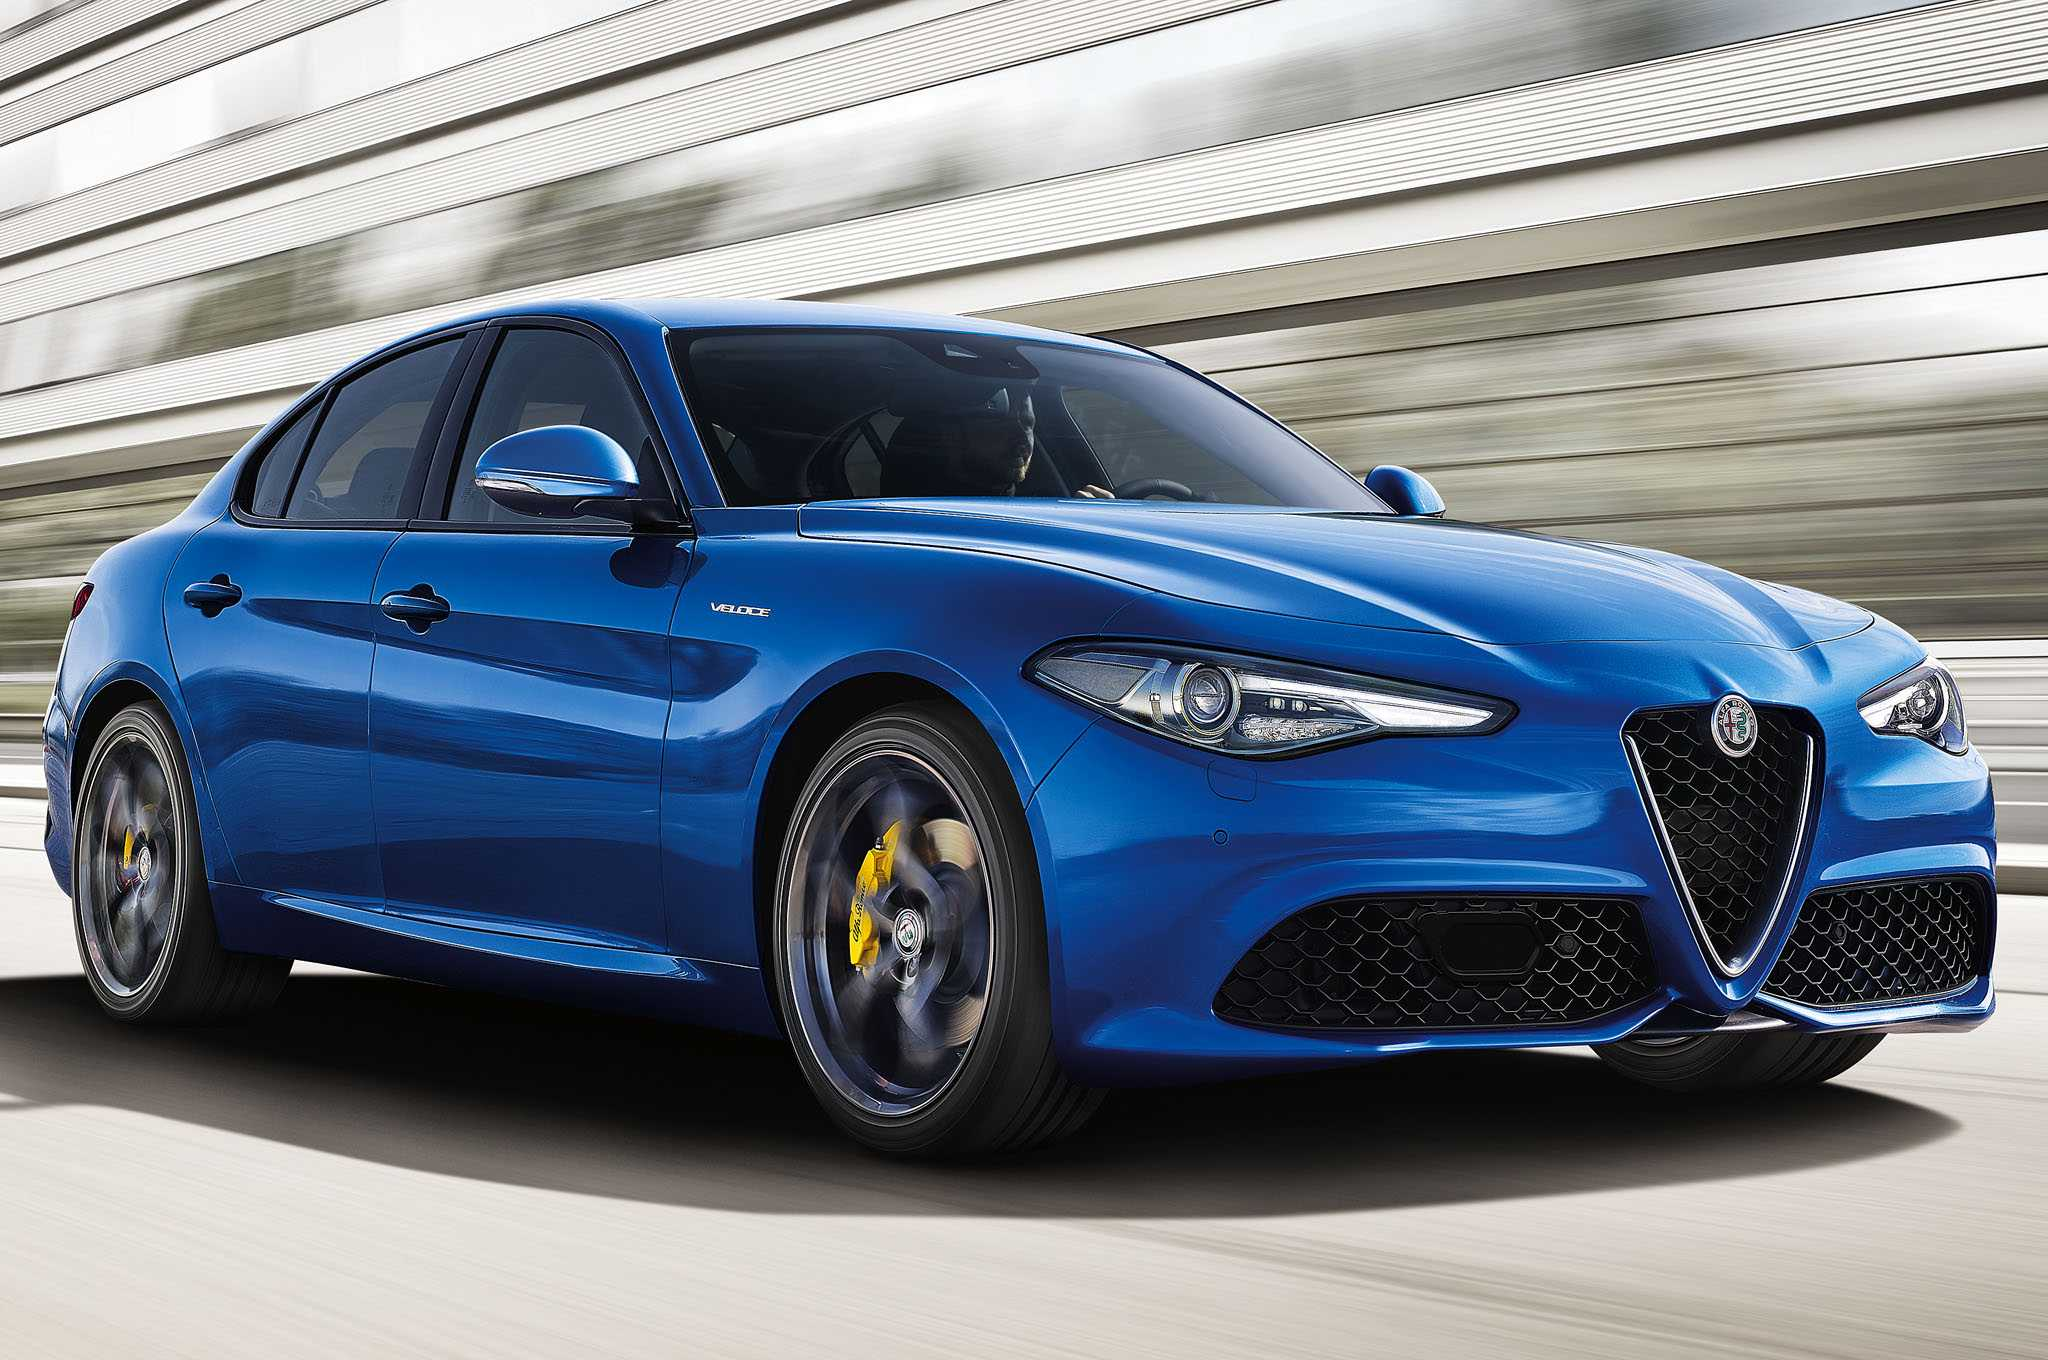 Alfa Romeo Giulia Veloce is Heading to Paris Auto Show